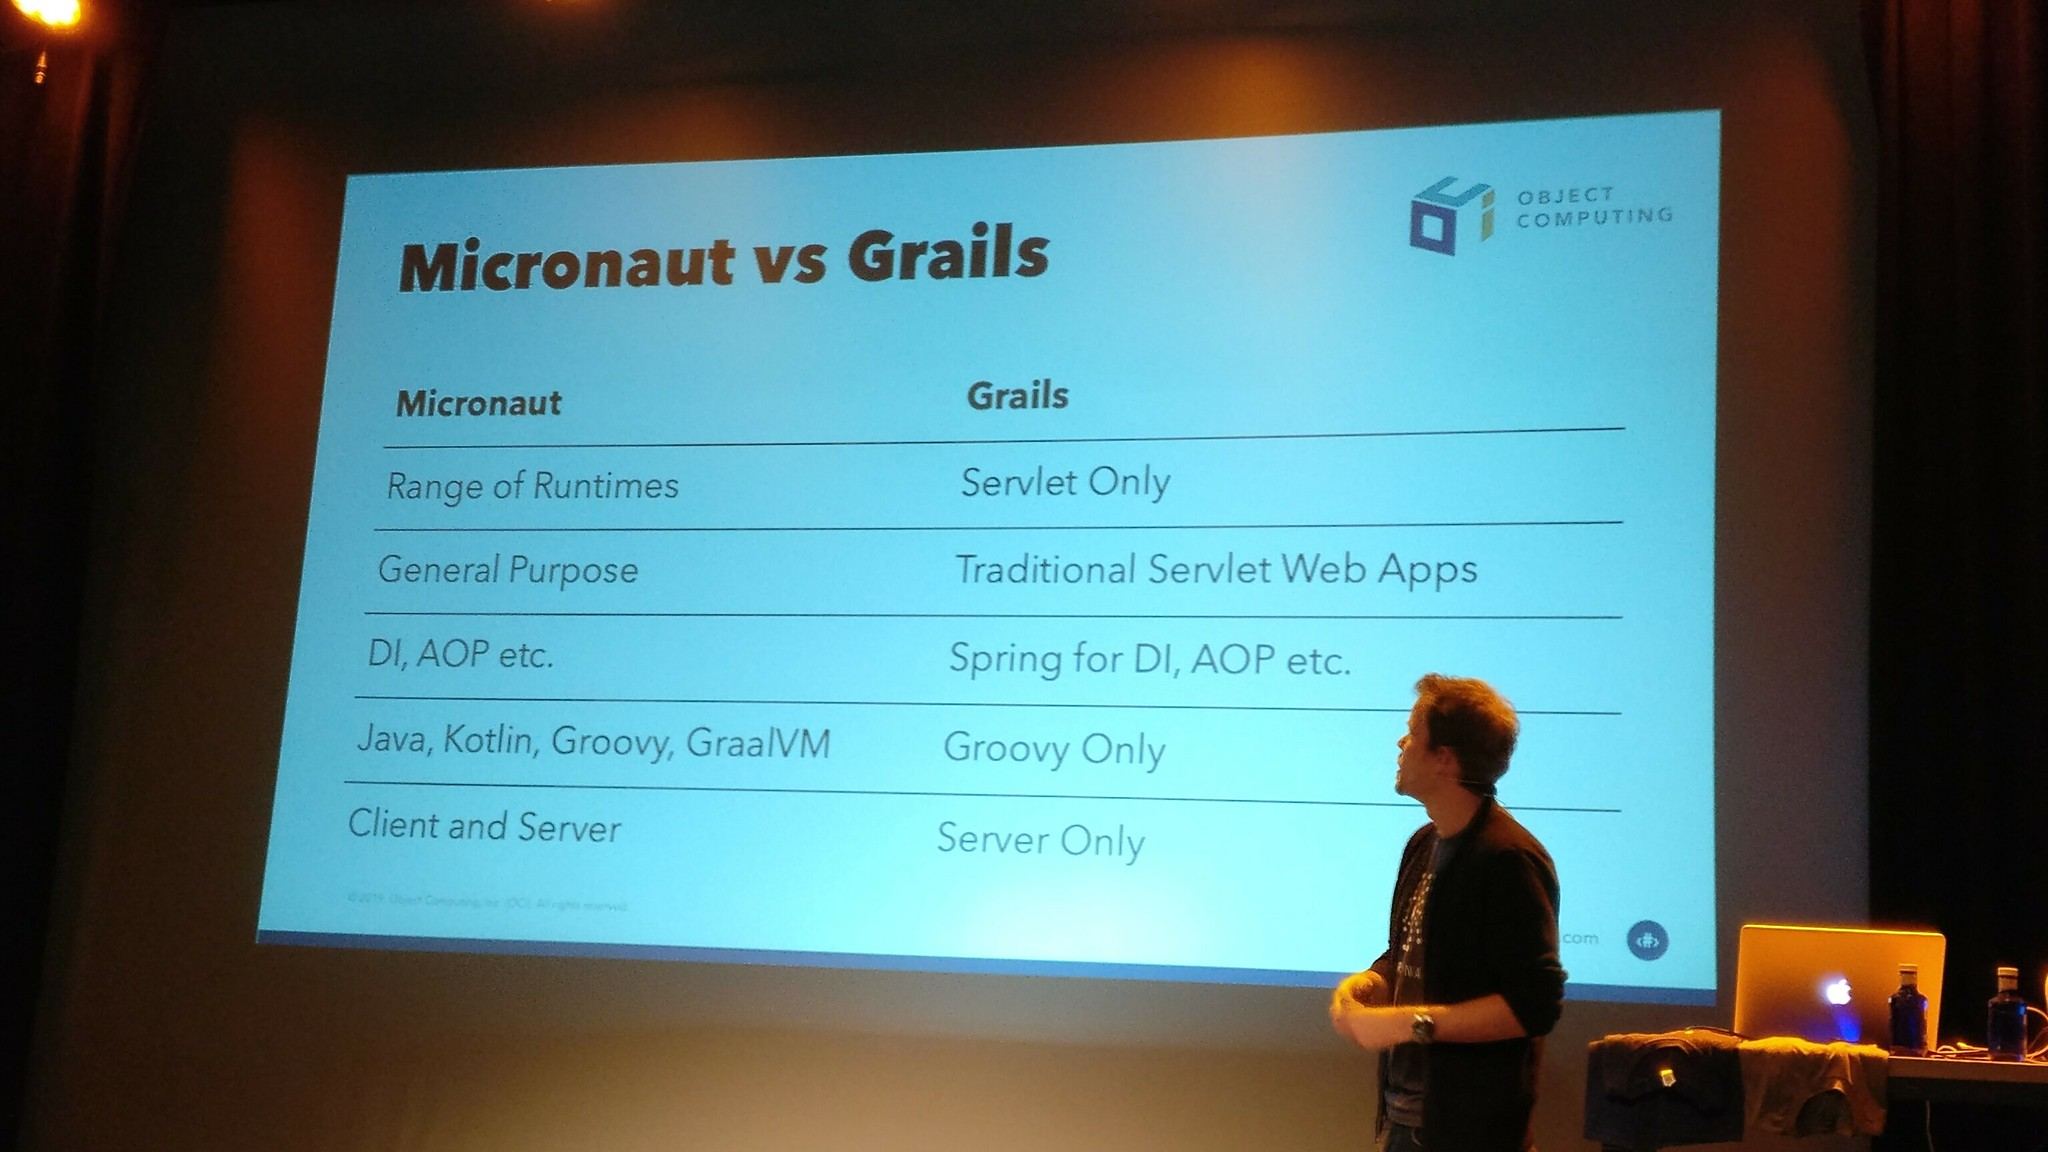 Graeme Rocher explains the differences between Micronaut and Grails